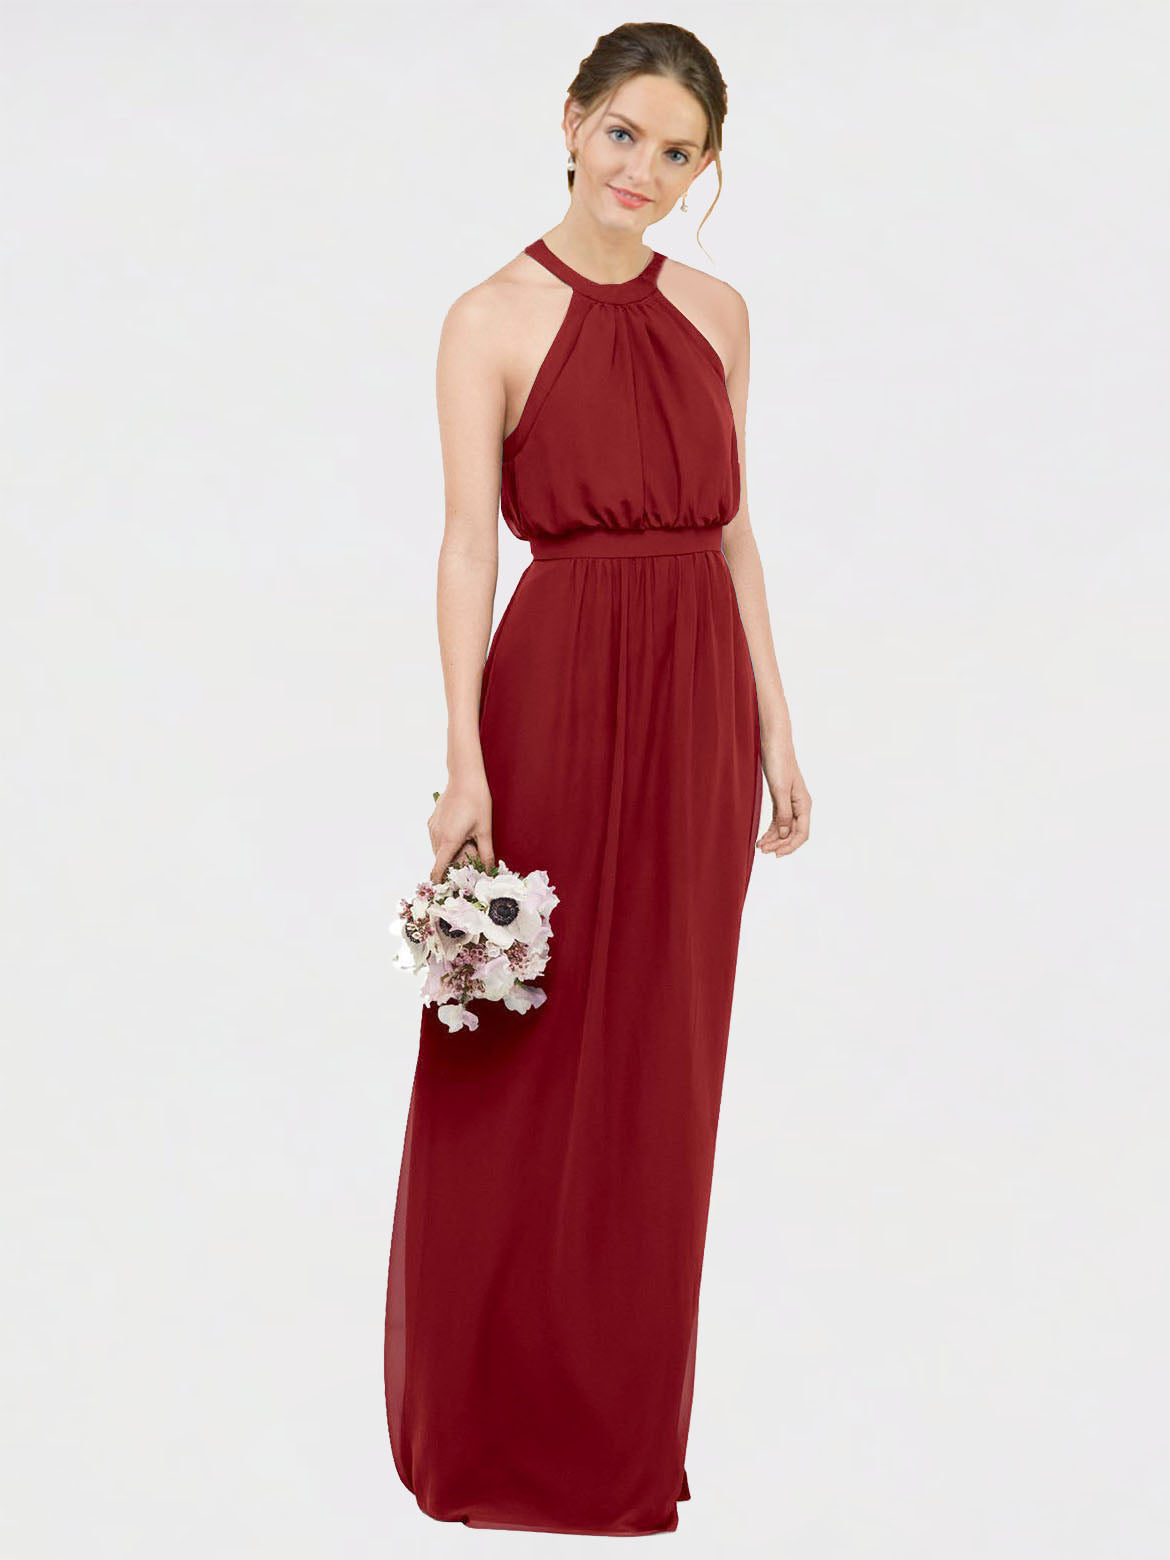 Long A-Line Halter, High Neck Sleeveless Burgundy Chiffon Bridesmaid Dress Elliot